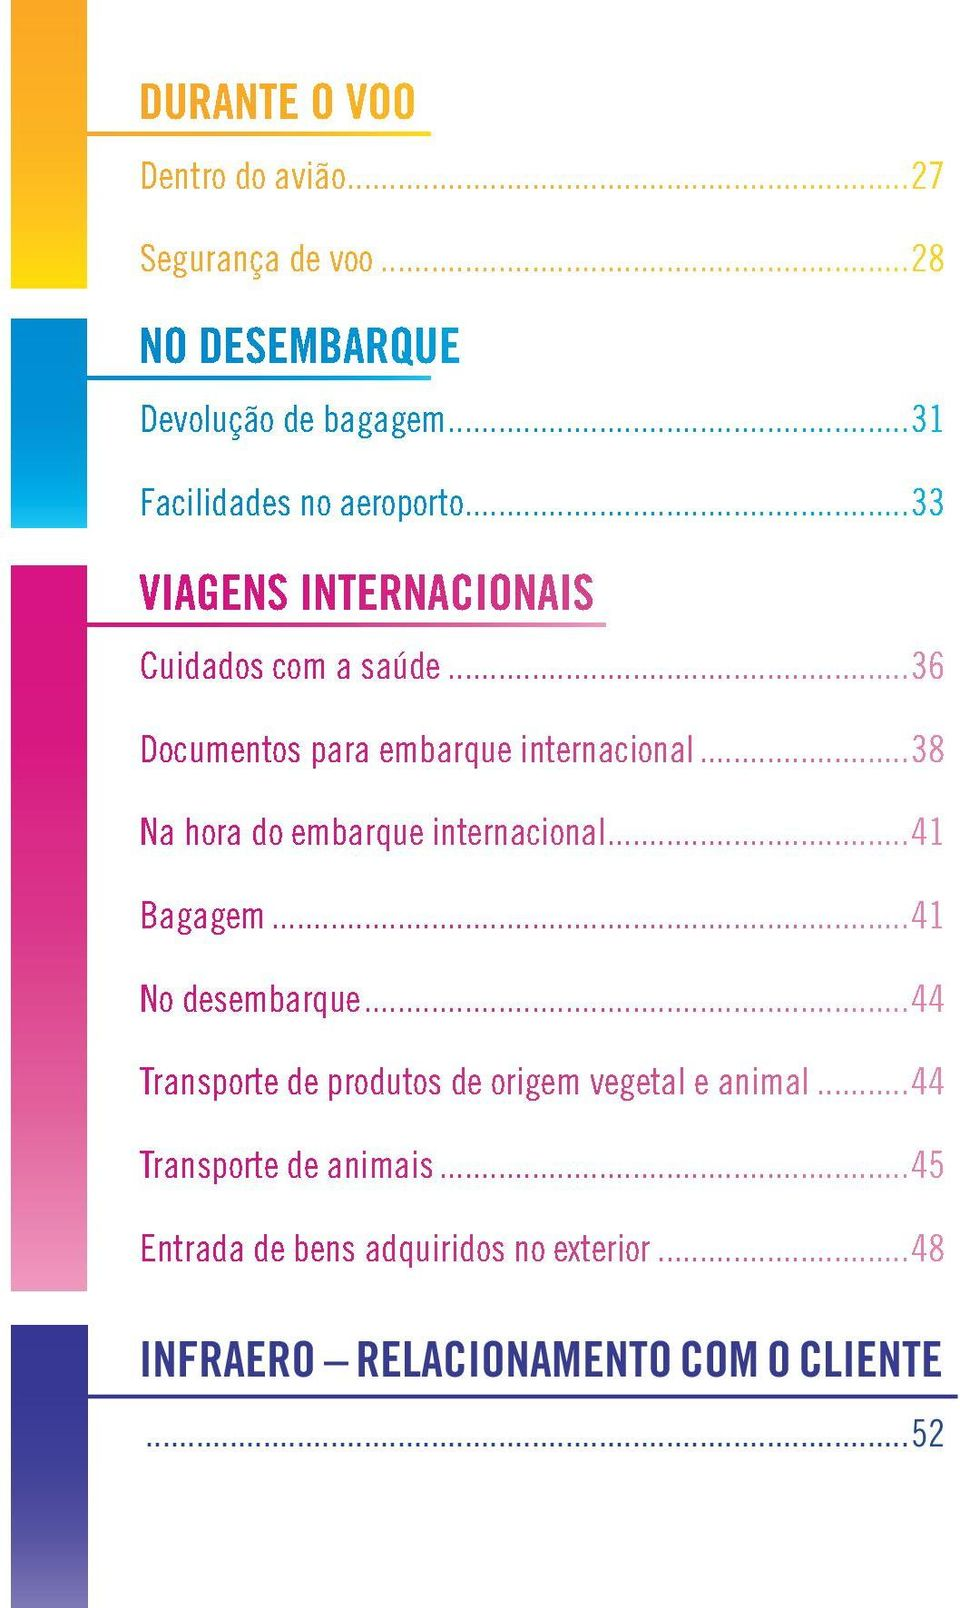 ..36 Documentos para embarque internacional...38 Na hora do embarque internacional...41 Bagagem-...41 No desembarque.